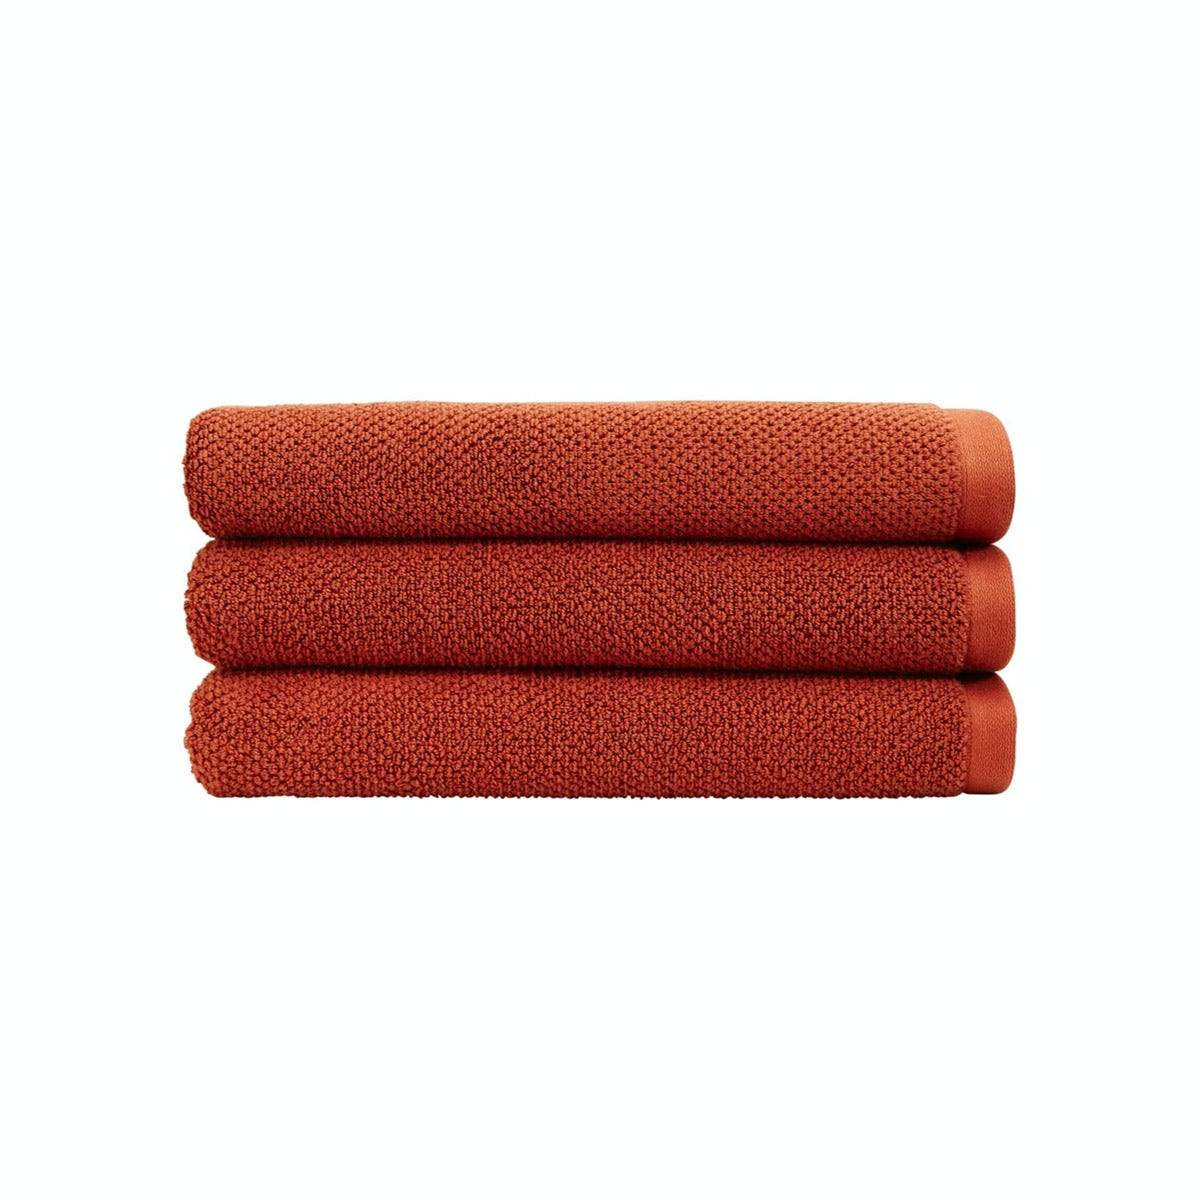 Christy Brixton cinnabar hand towel